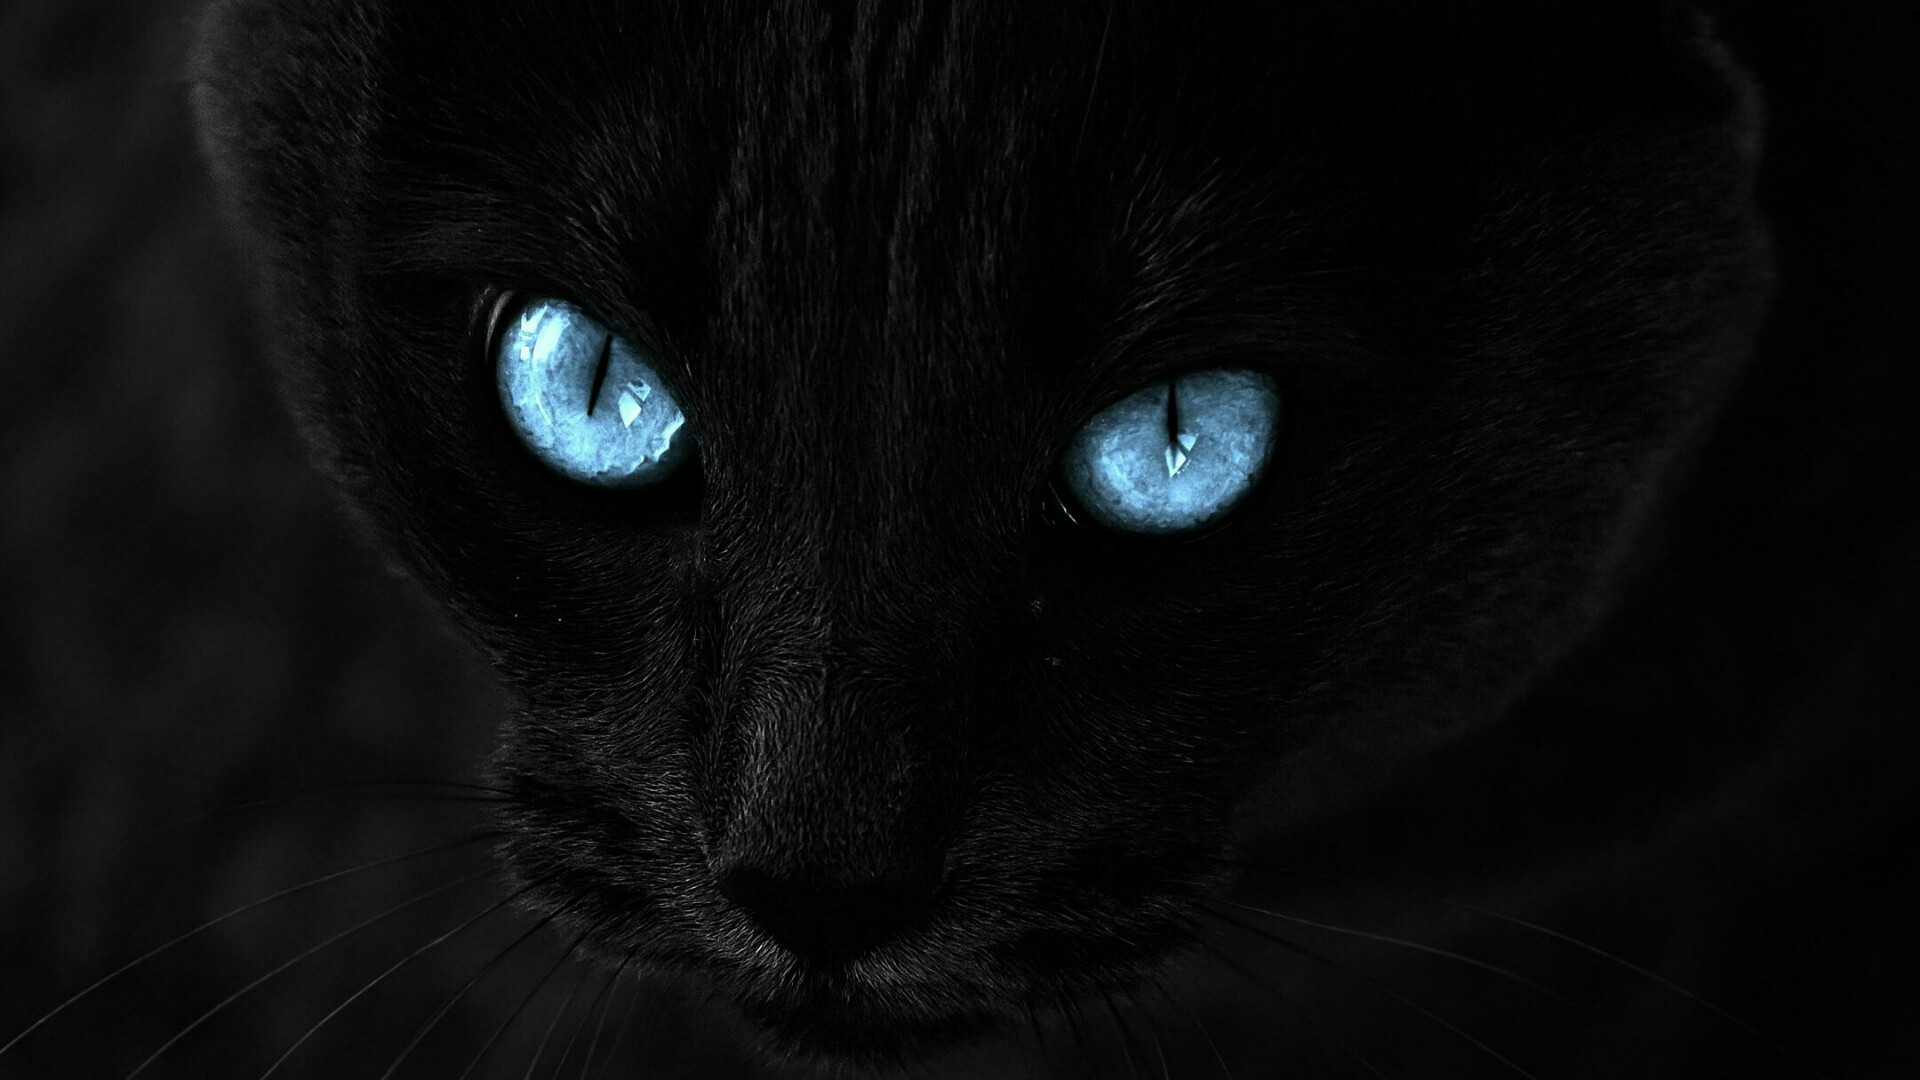 Black cat with blue eyes wallpaper